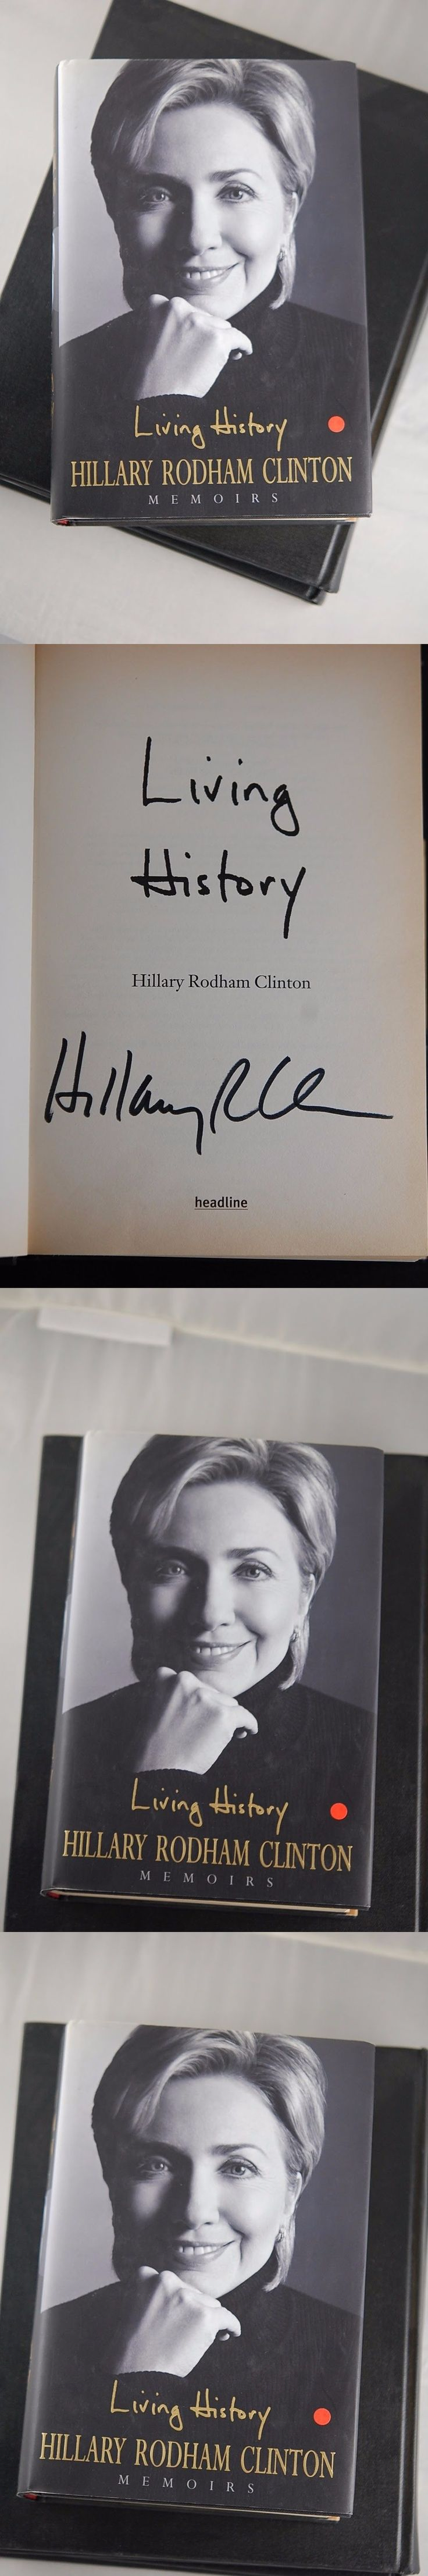 Hillary Clinton: Signed And Autographed Hillary Rodham Clinton Book Living History -> BUY IT NOW ONLY: $50 on eBay!